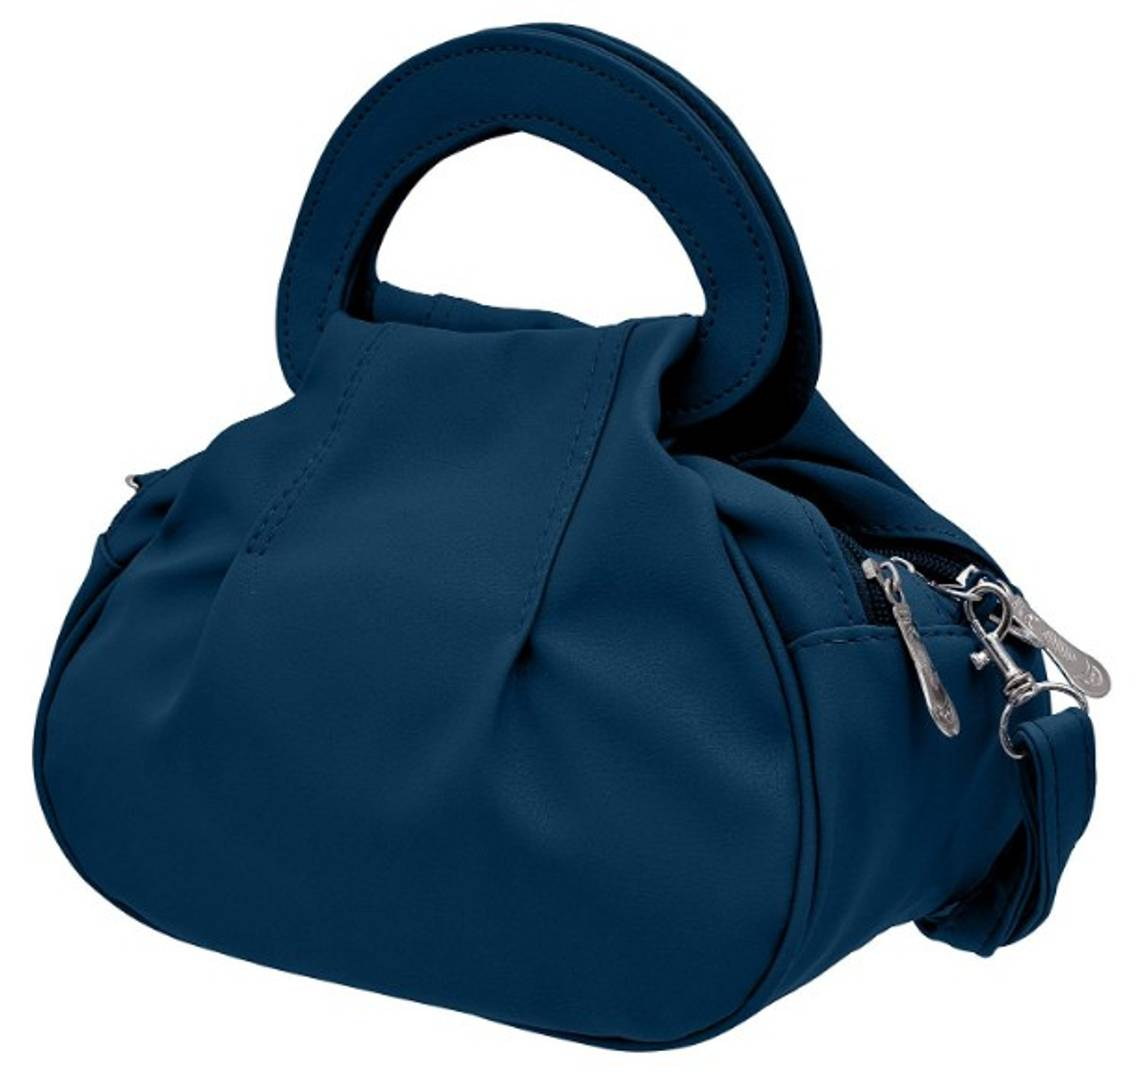 Elegant PU Handbag With Sling Strap